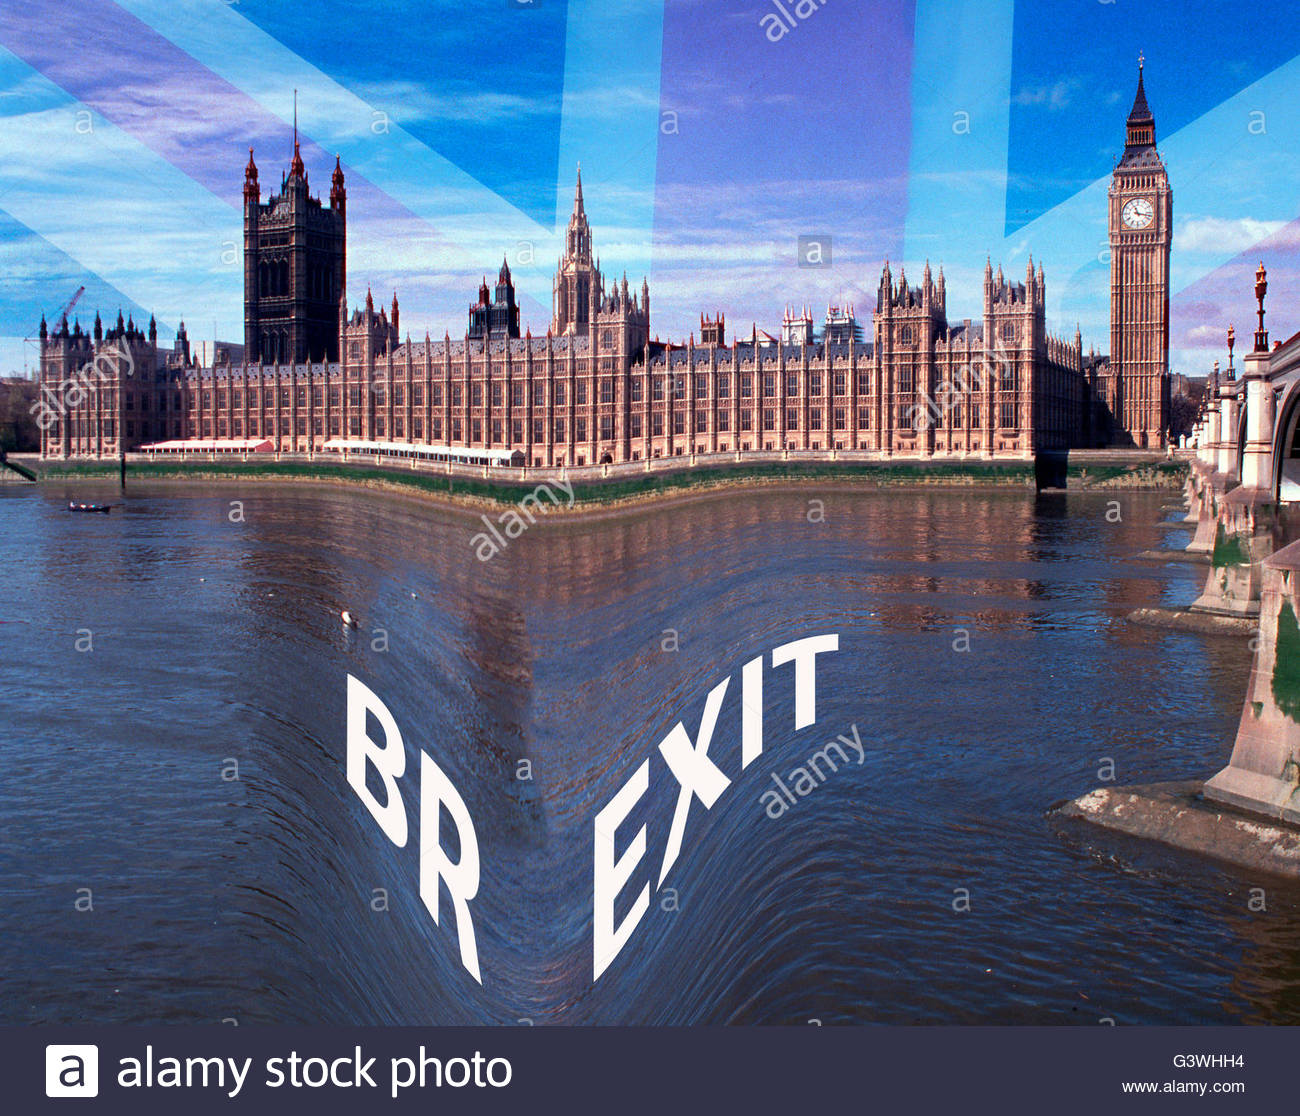 Brexit campaign wins the EU referendum on 23rd June , 2016 Stock Photo